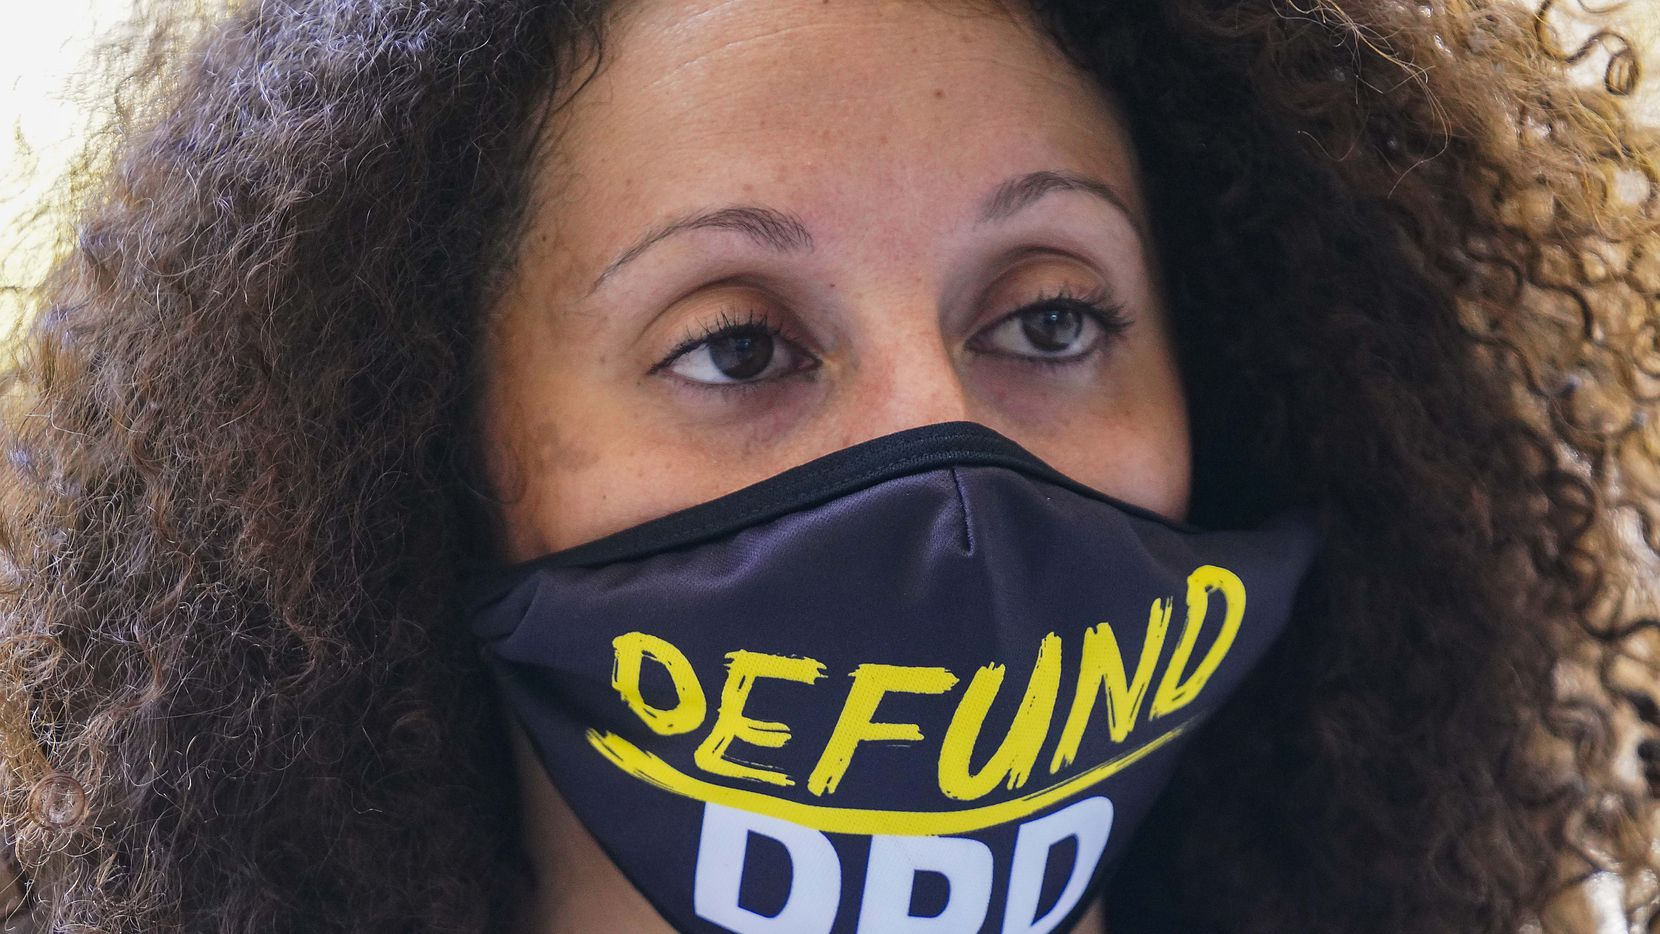 Sara Mokuria a co-founder of Mothers Against Police Brutality at Juneteenth at Dallas City Hall on Friday, June 19, 2020.  Mokuria is one of the authors of a list of proposals that calls for dramatic changes in the city's budget and police department. (Smiley N. Pool/The Dallas Morning News)